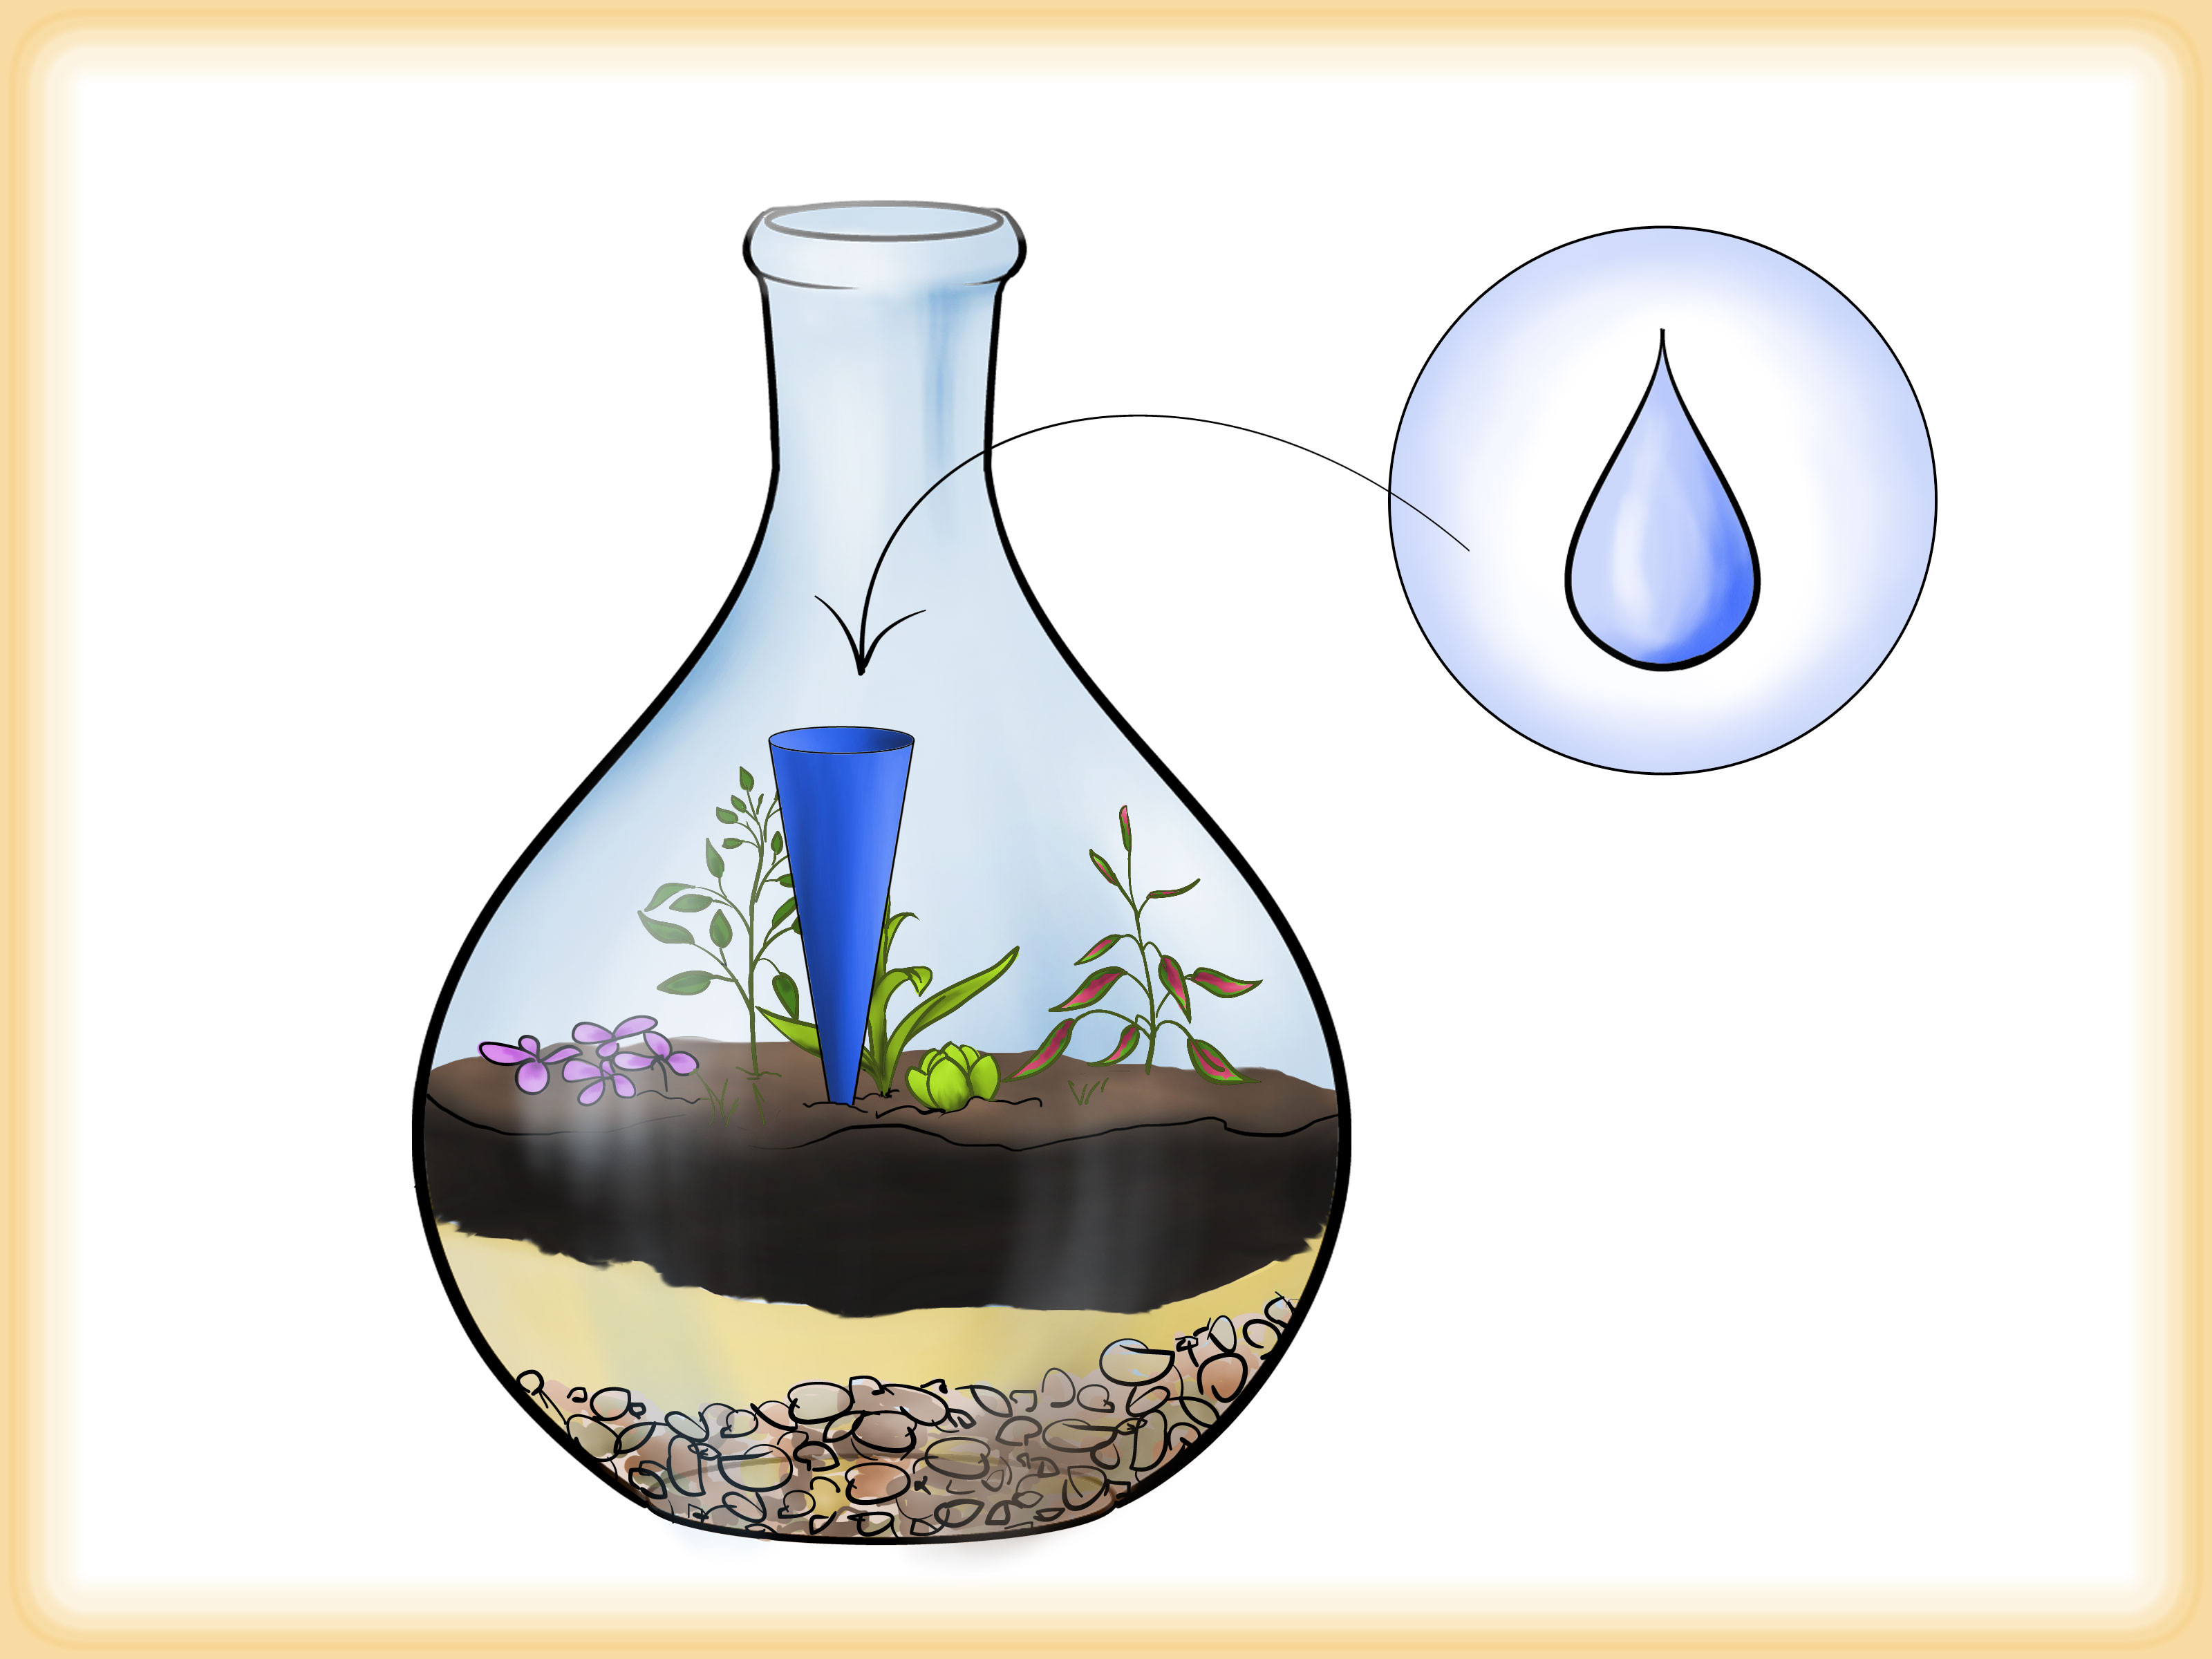 sand art vase of how to grow a garden in a bottle 6 steps with pictures for grow a garden in a bottle step 6